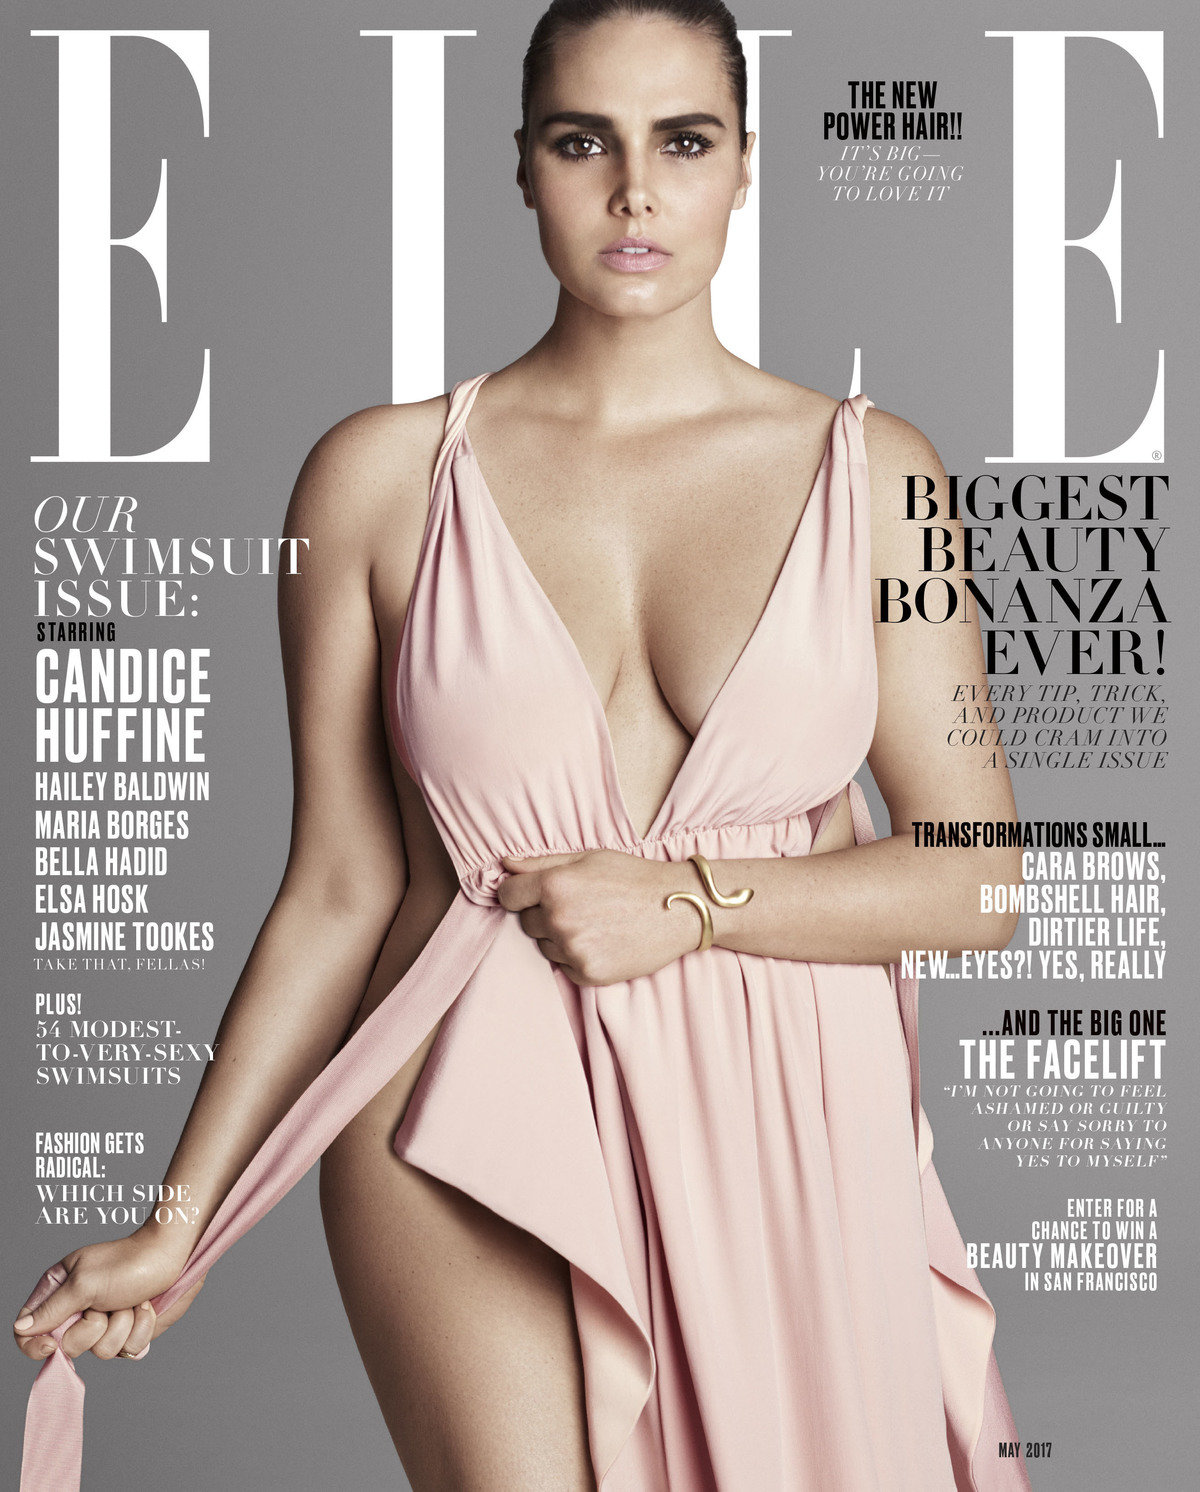 Elle may candice huffine cover 1200 xxx q85